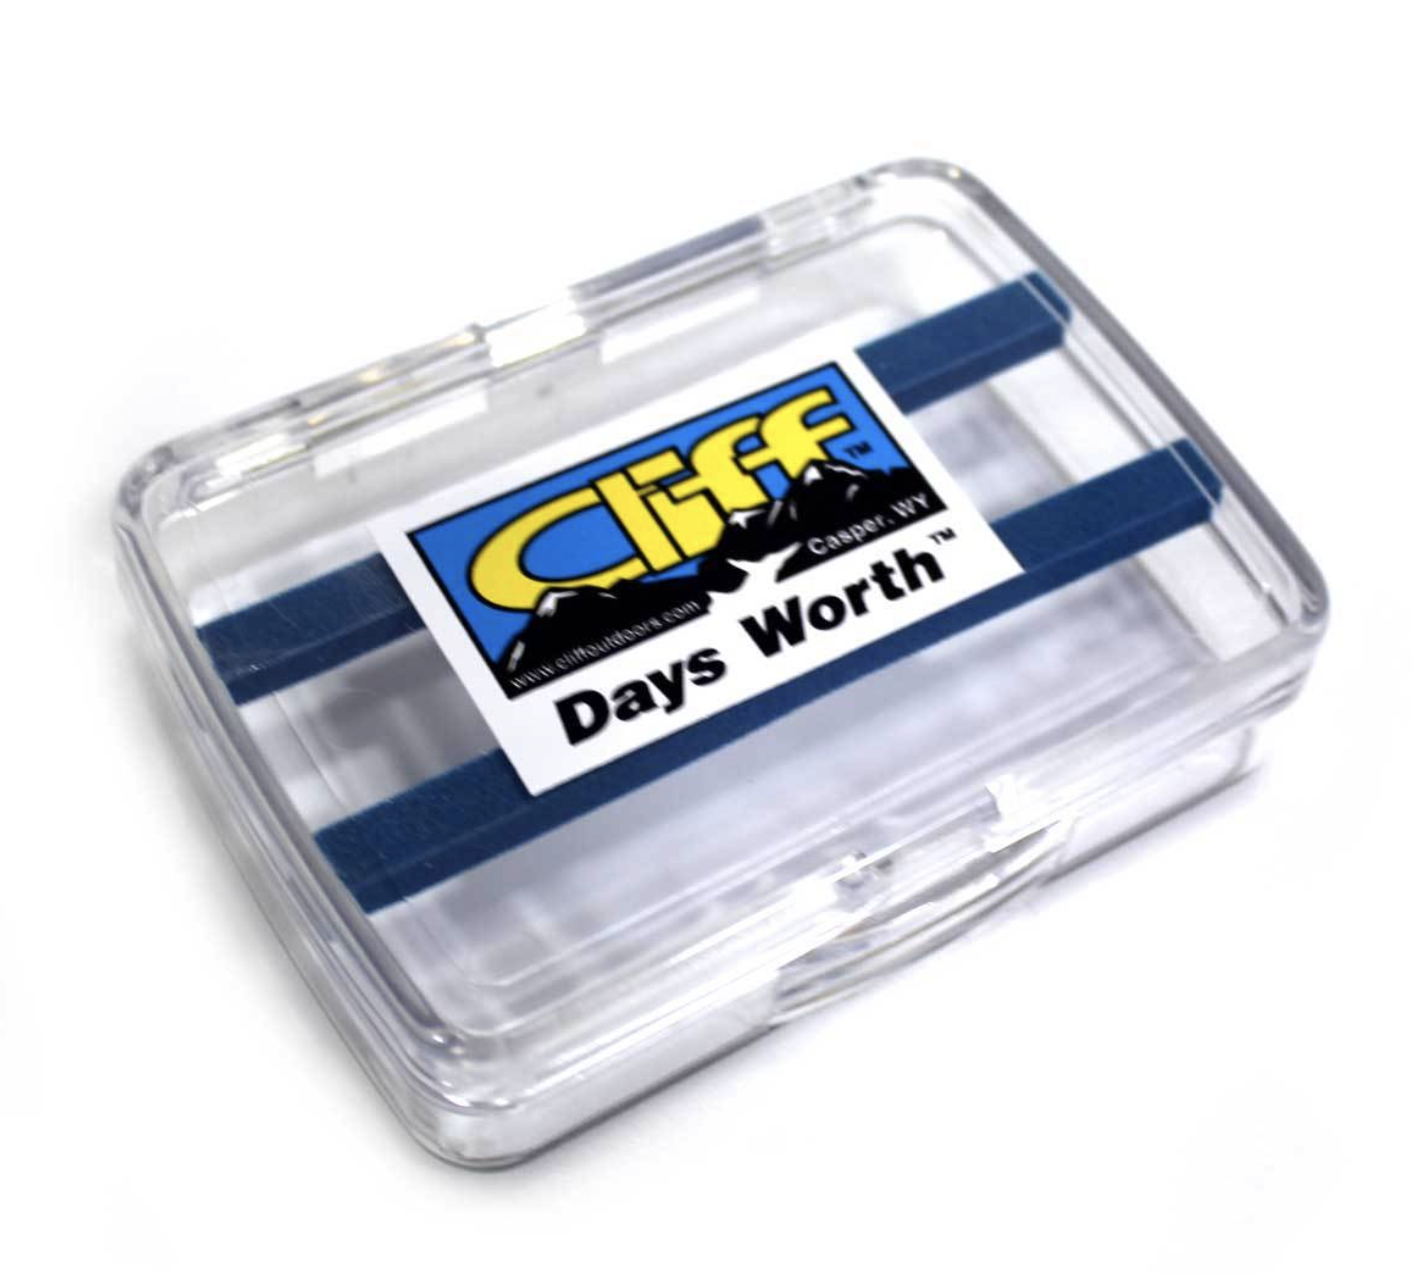 Cliff the Days Worth Fly Box